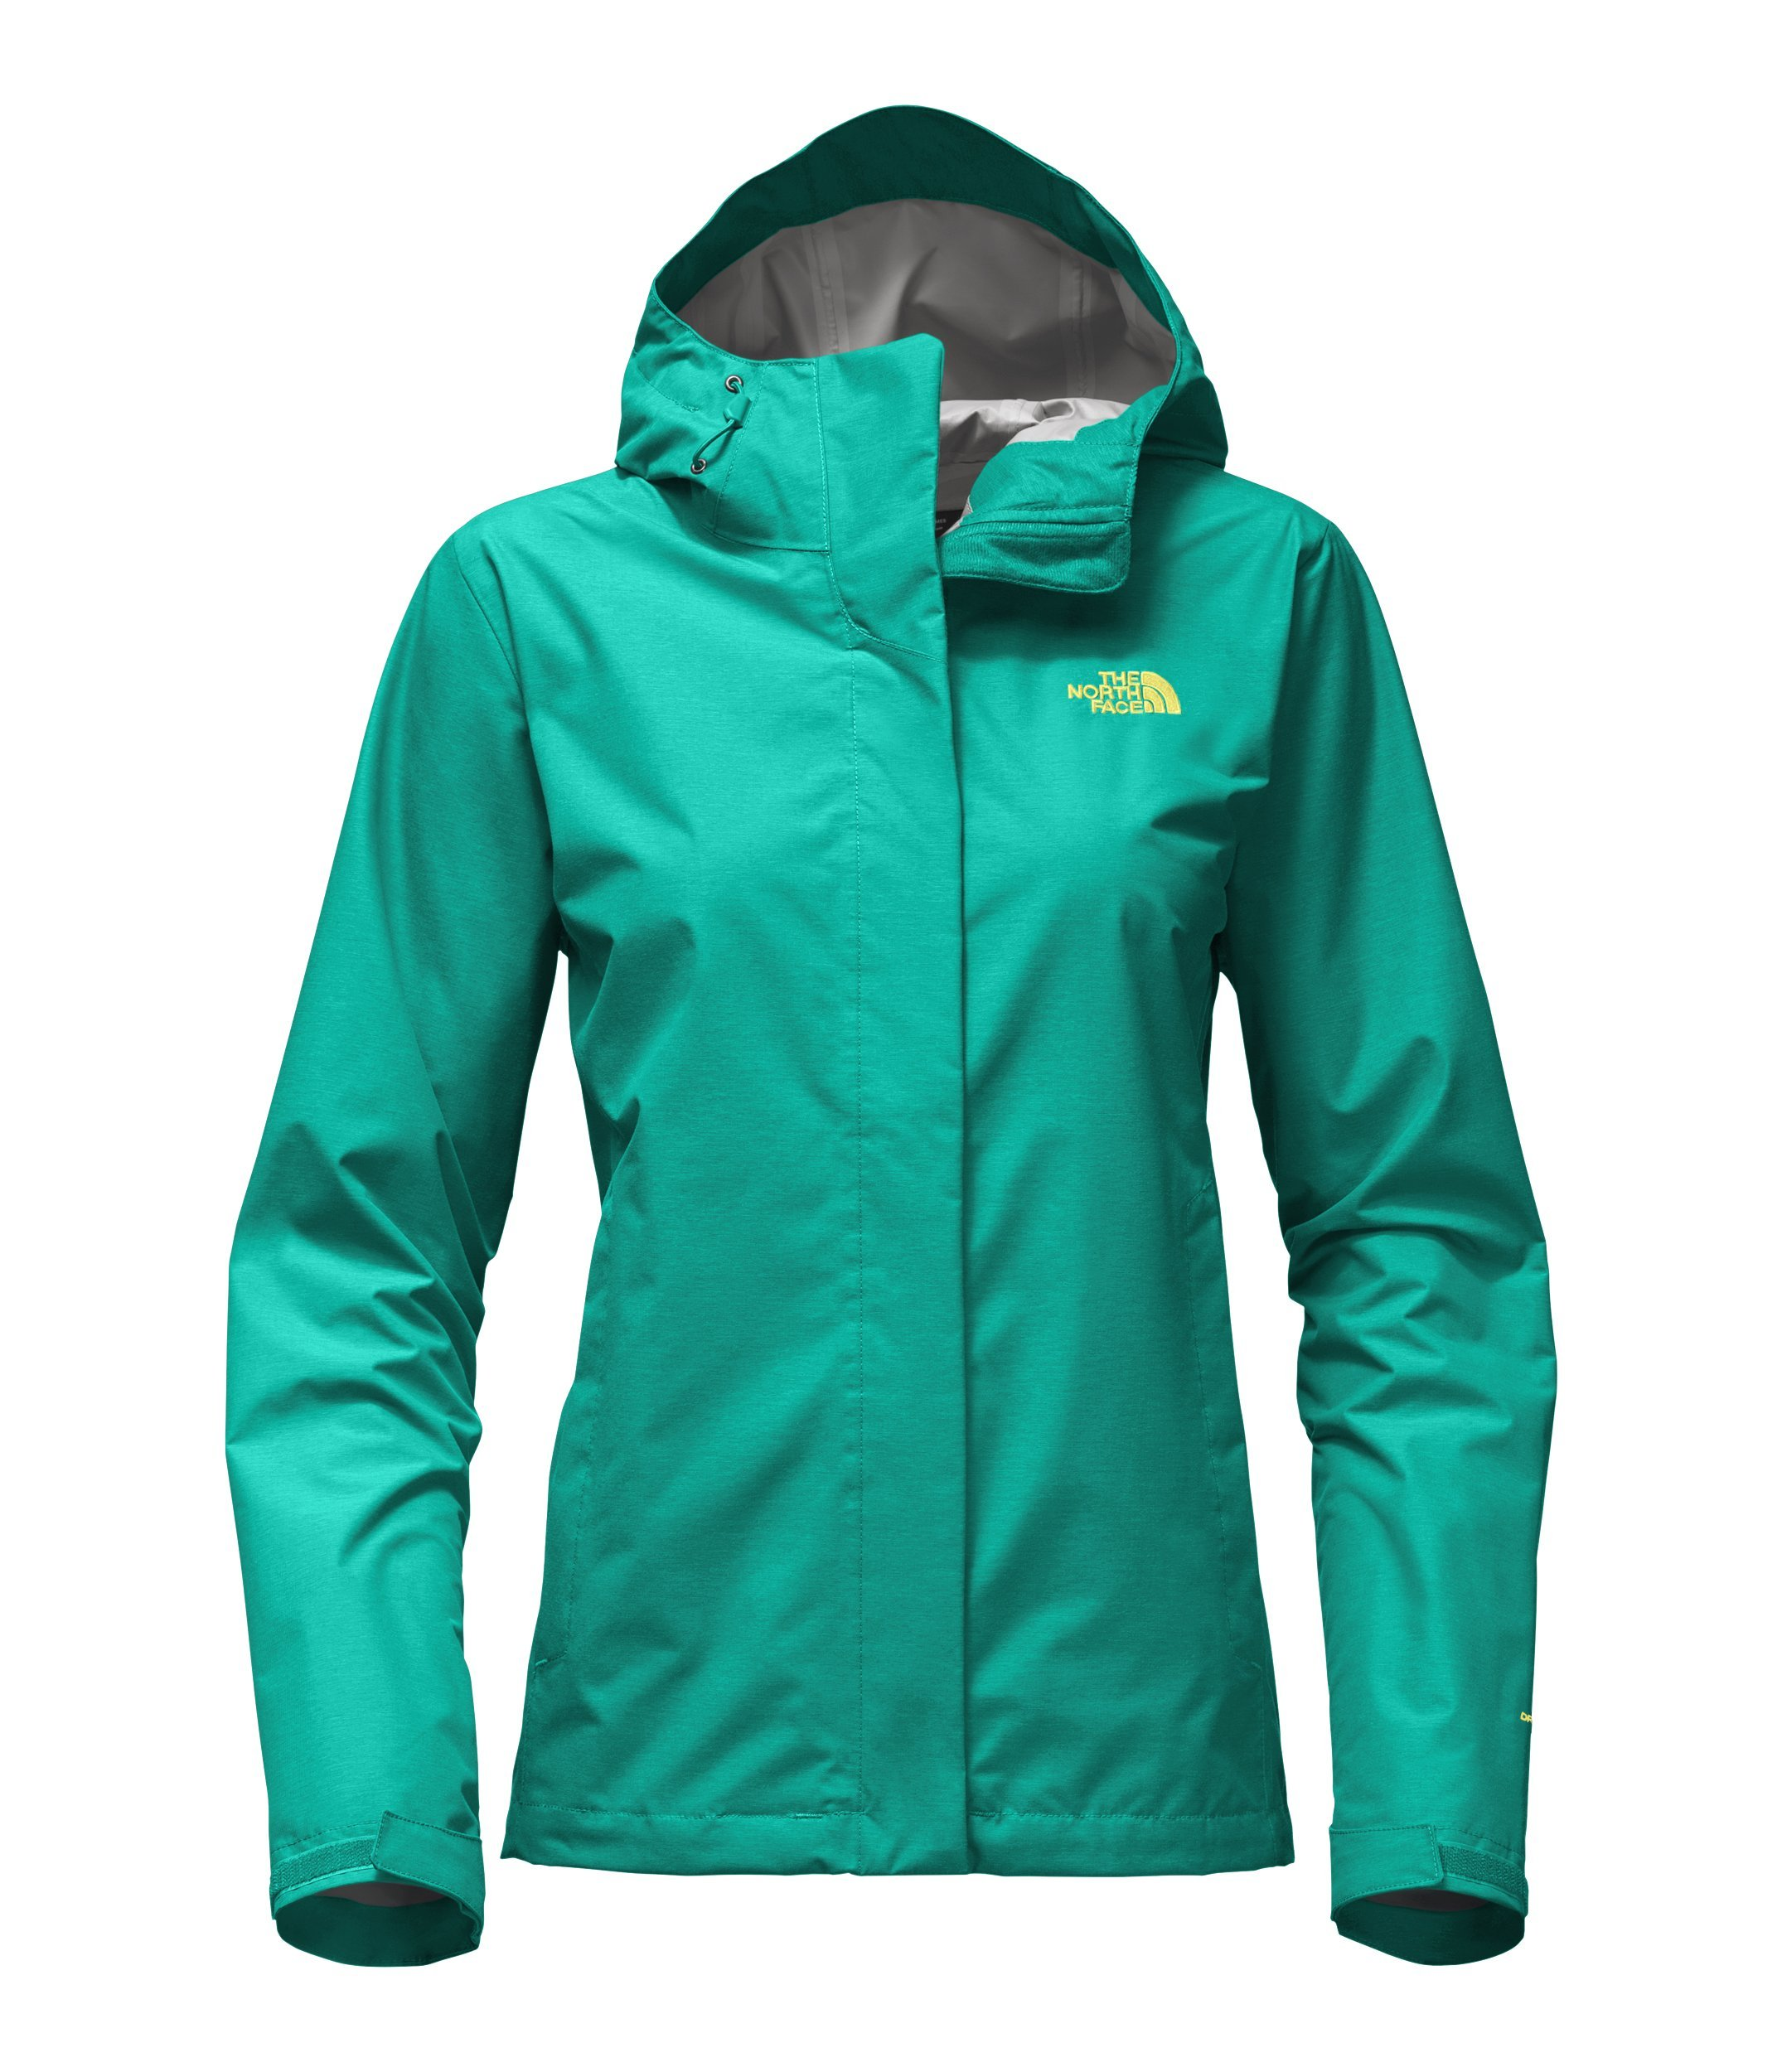 The North Face Women's Venture 2 Jacket Pool Green Heather - S by The North Face